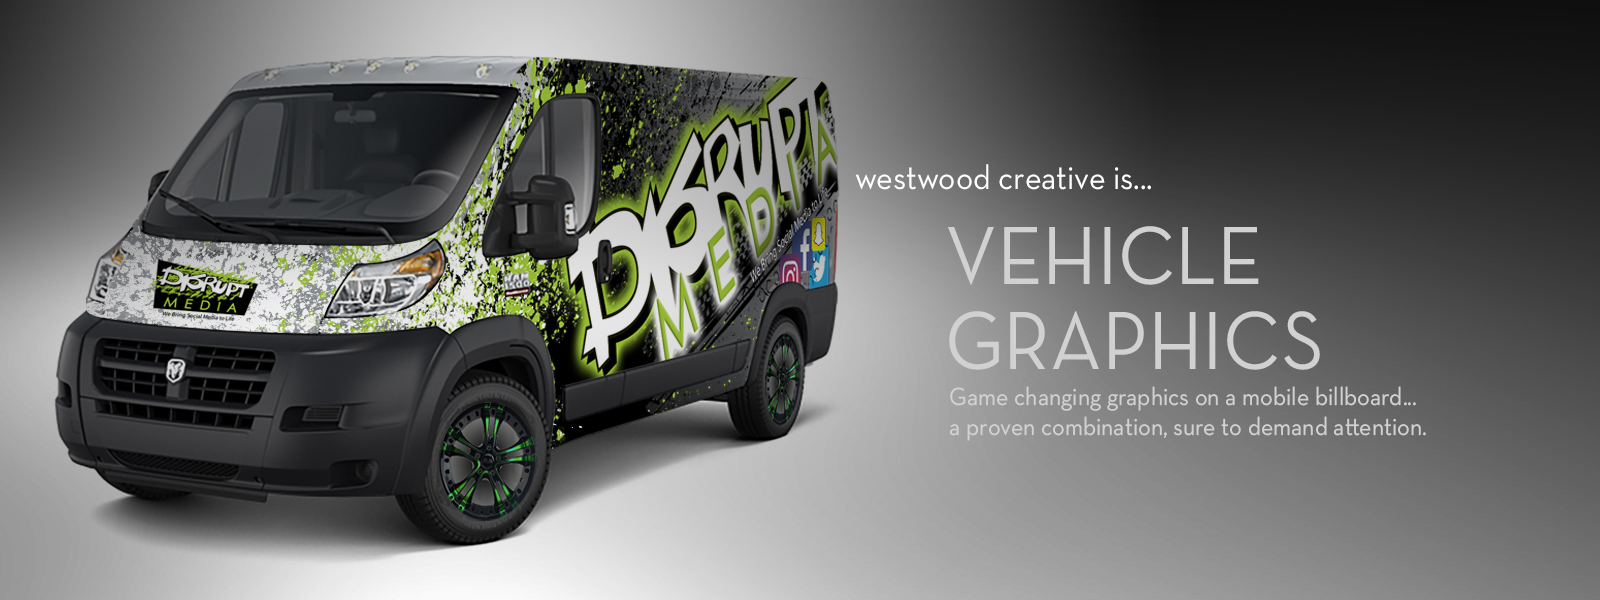 westwood creative Vehicle Graphics